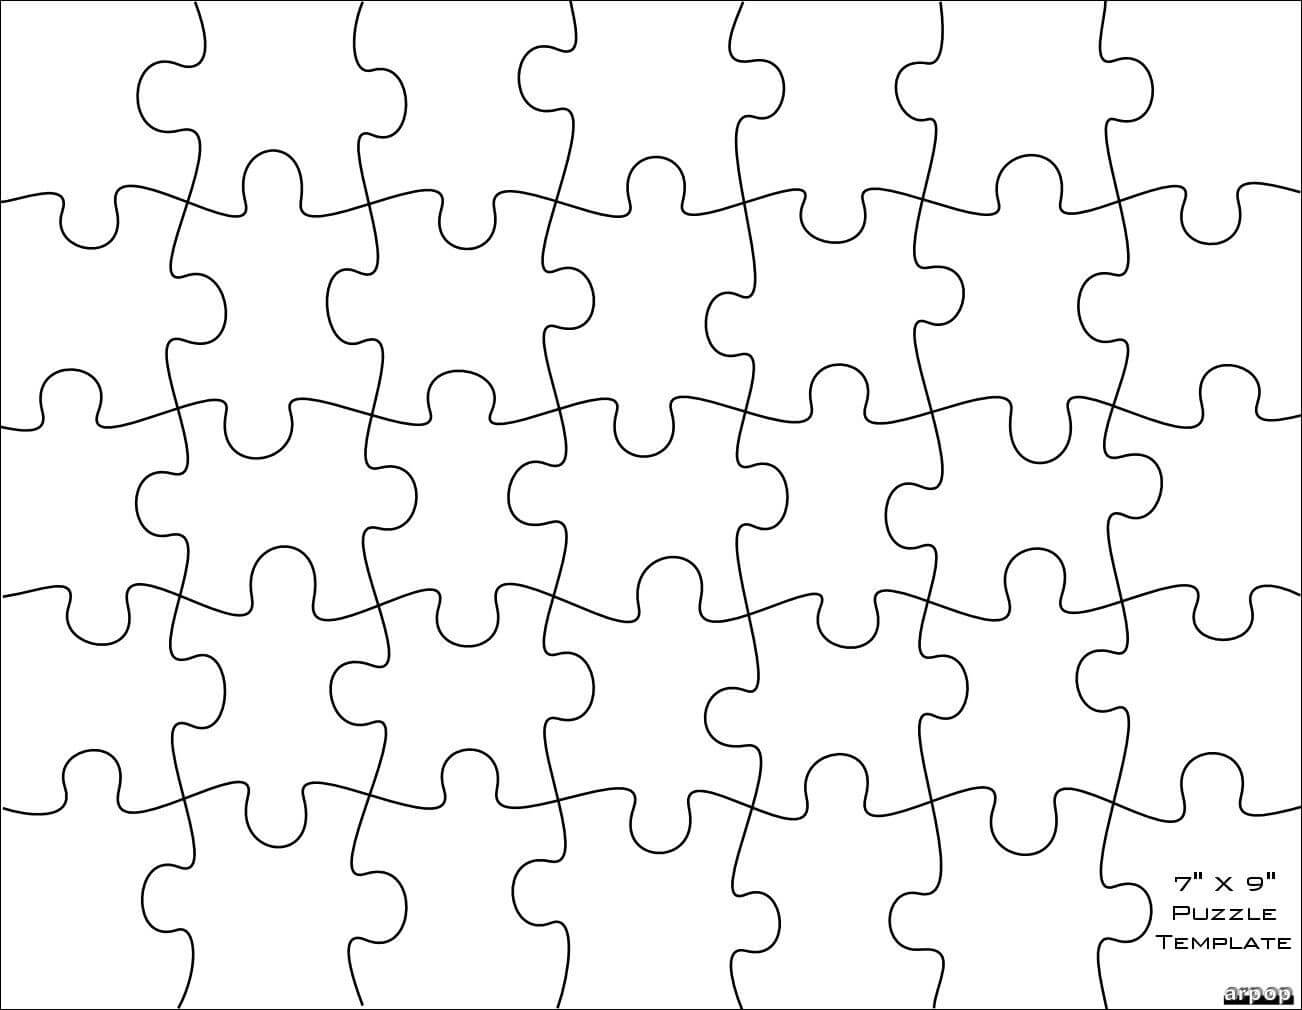 Free Scroll Saw Patternsarpop: Jigsaw Puzzle Templates For Jigsaw Puzzle Template For Word